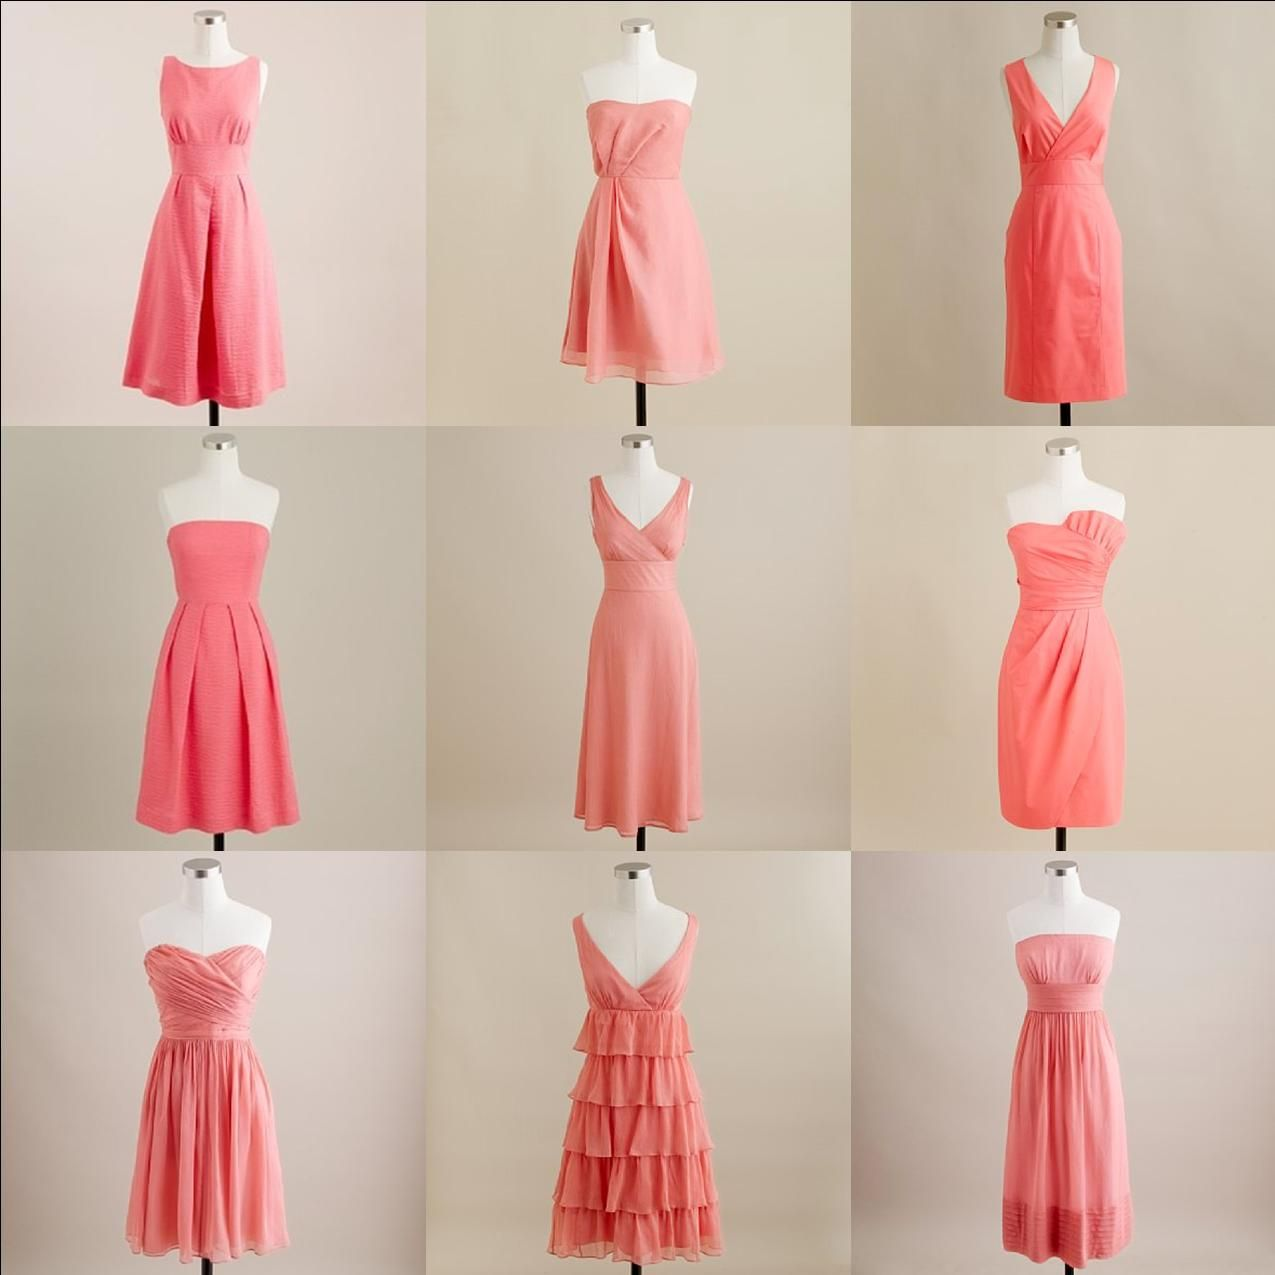 Mismatched coral j crew bridesmaids dresses jcrewdresses black mismatched coral j crew bridesmaids dresses in grey for britts wedding ombrellifo Choice Image